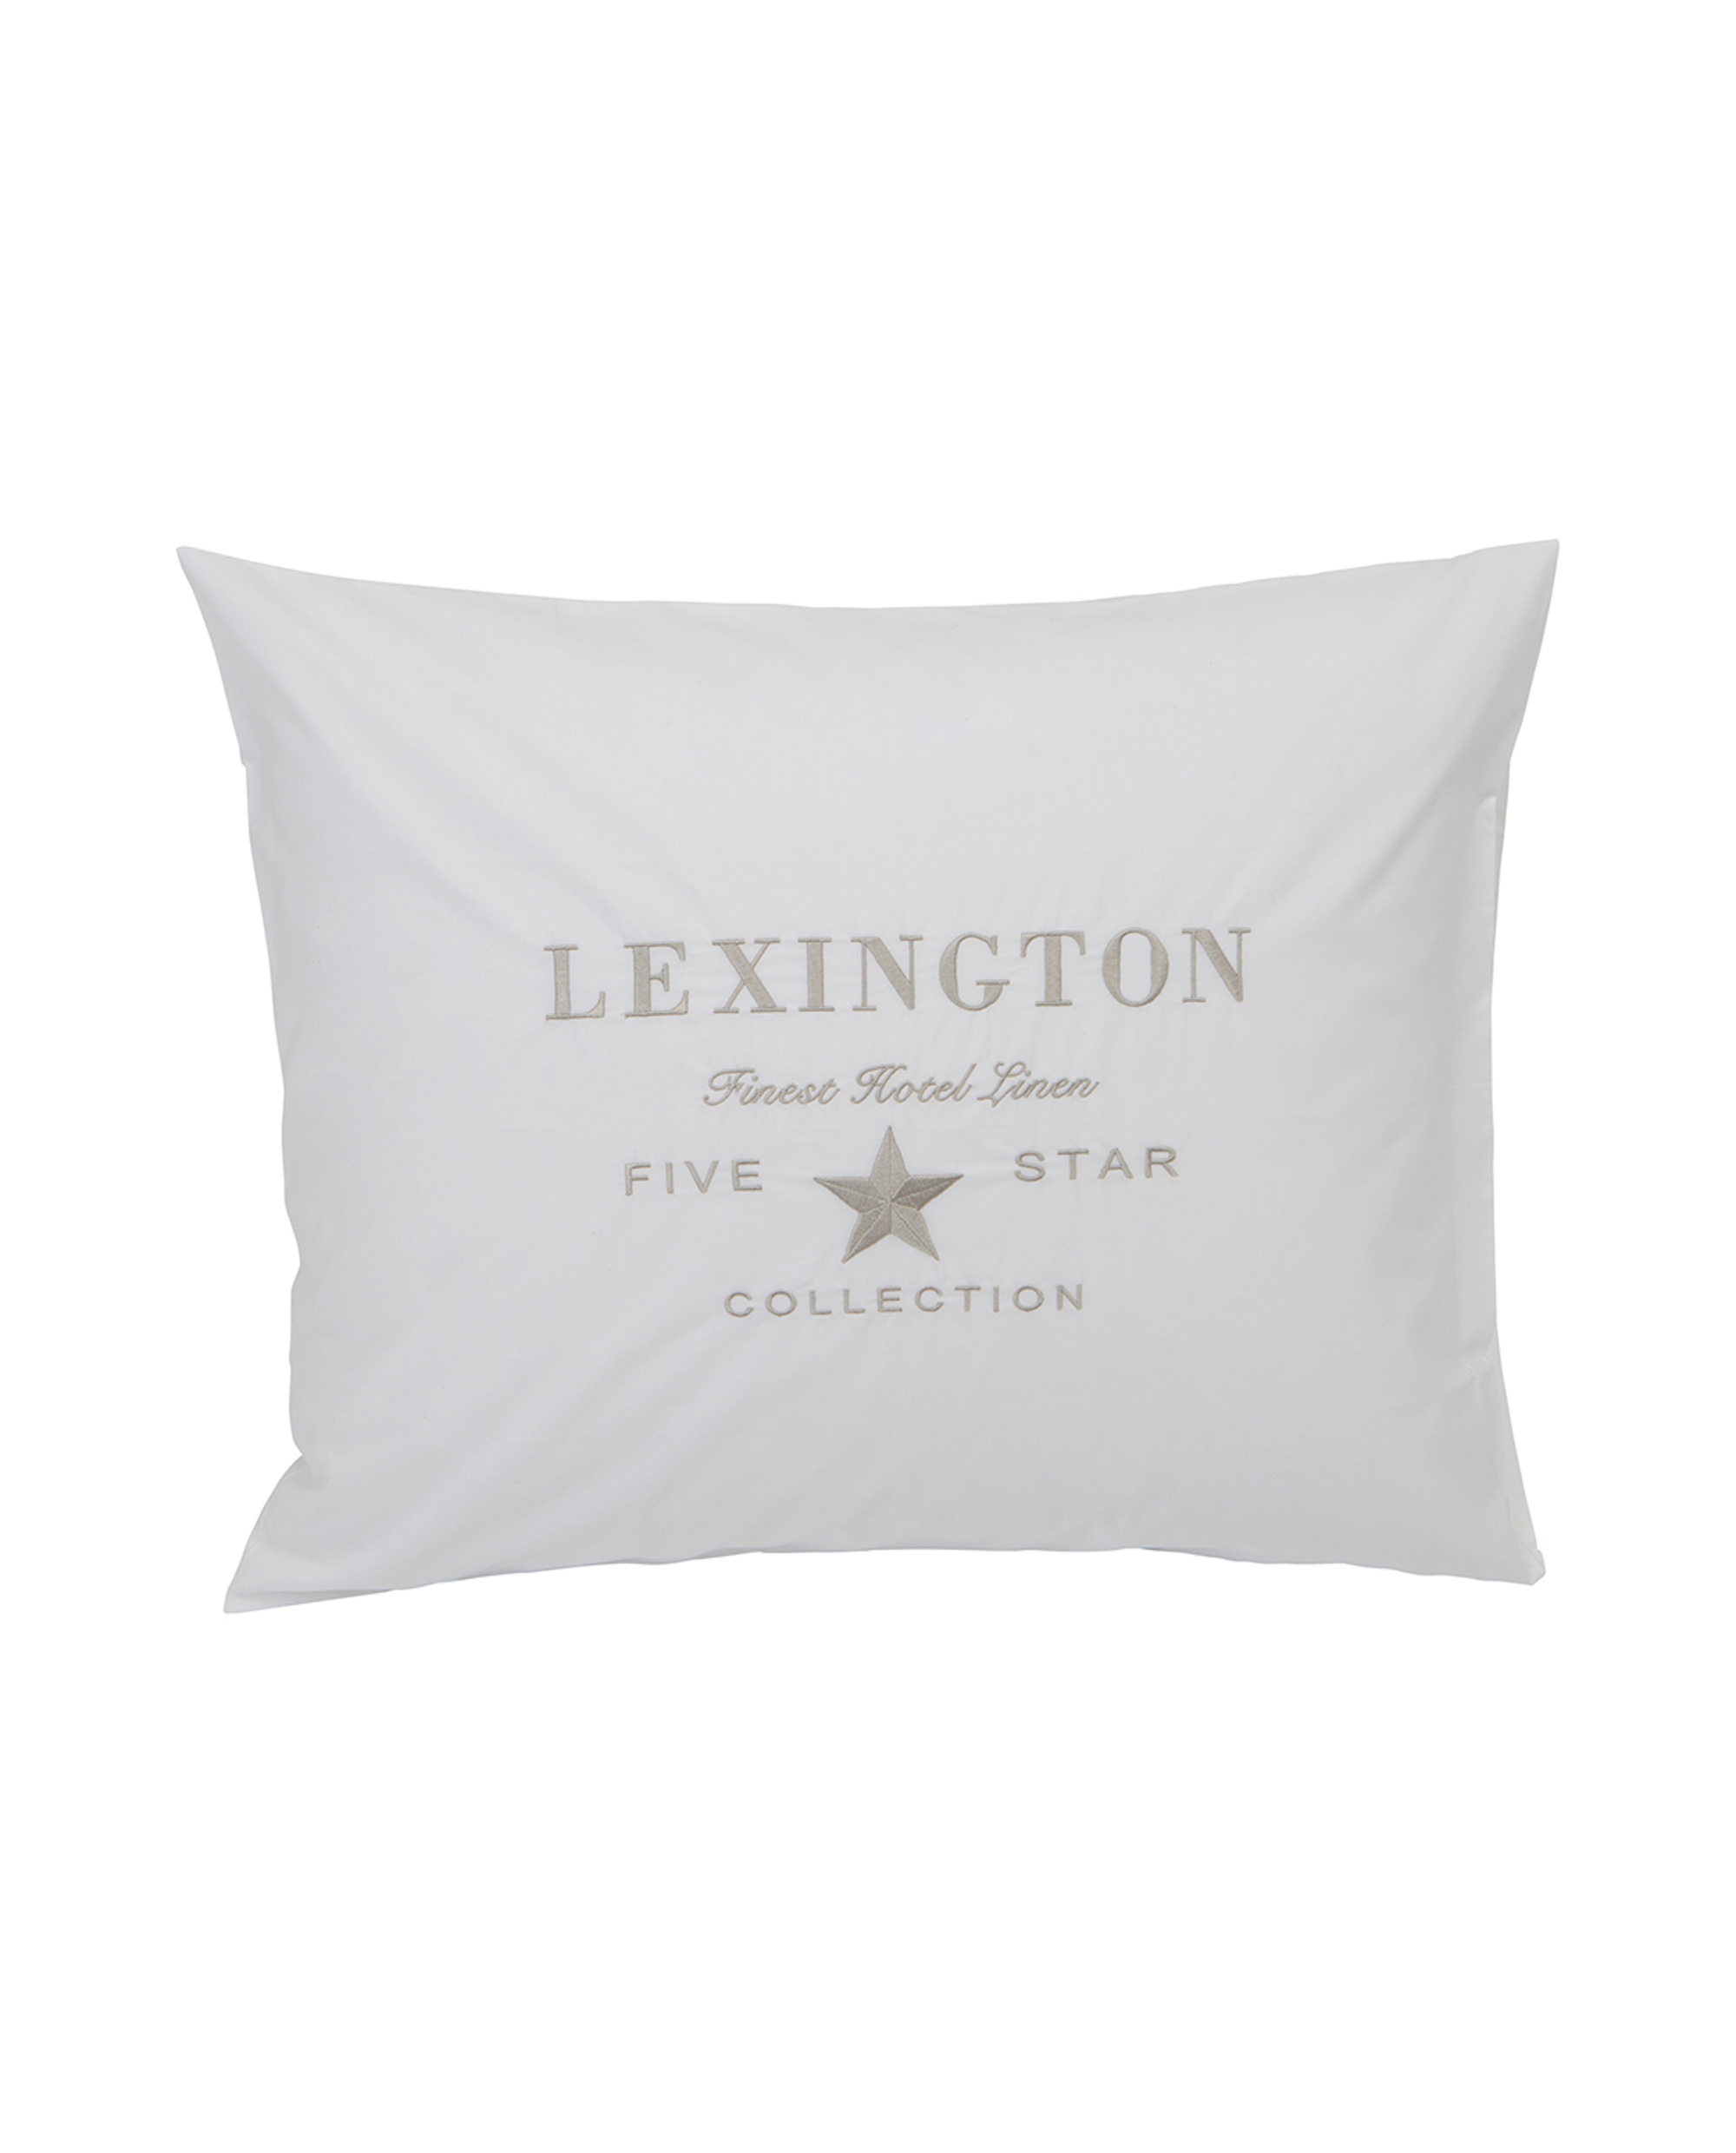 Bettwäsche 260x240 Hotel Embroidery White Lt Beige Pillowcase